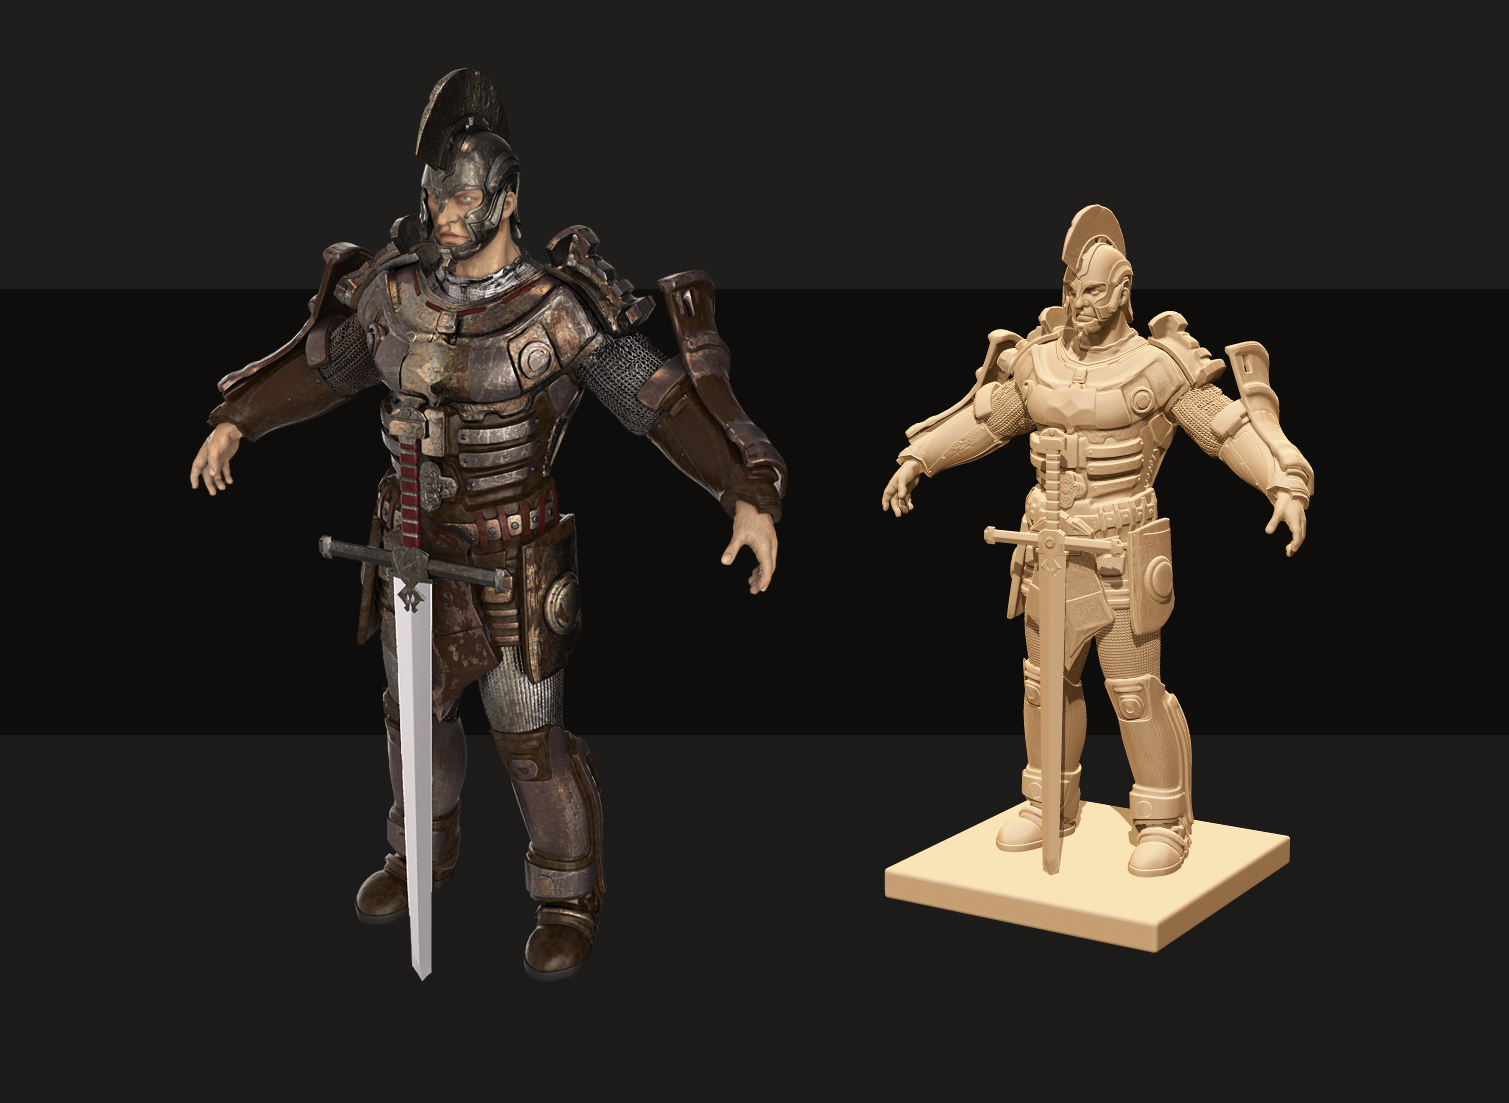 Warrior 3D model - high poly